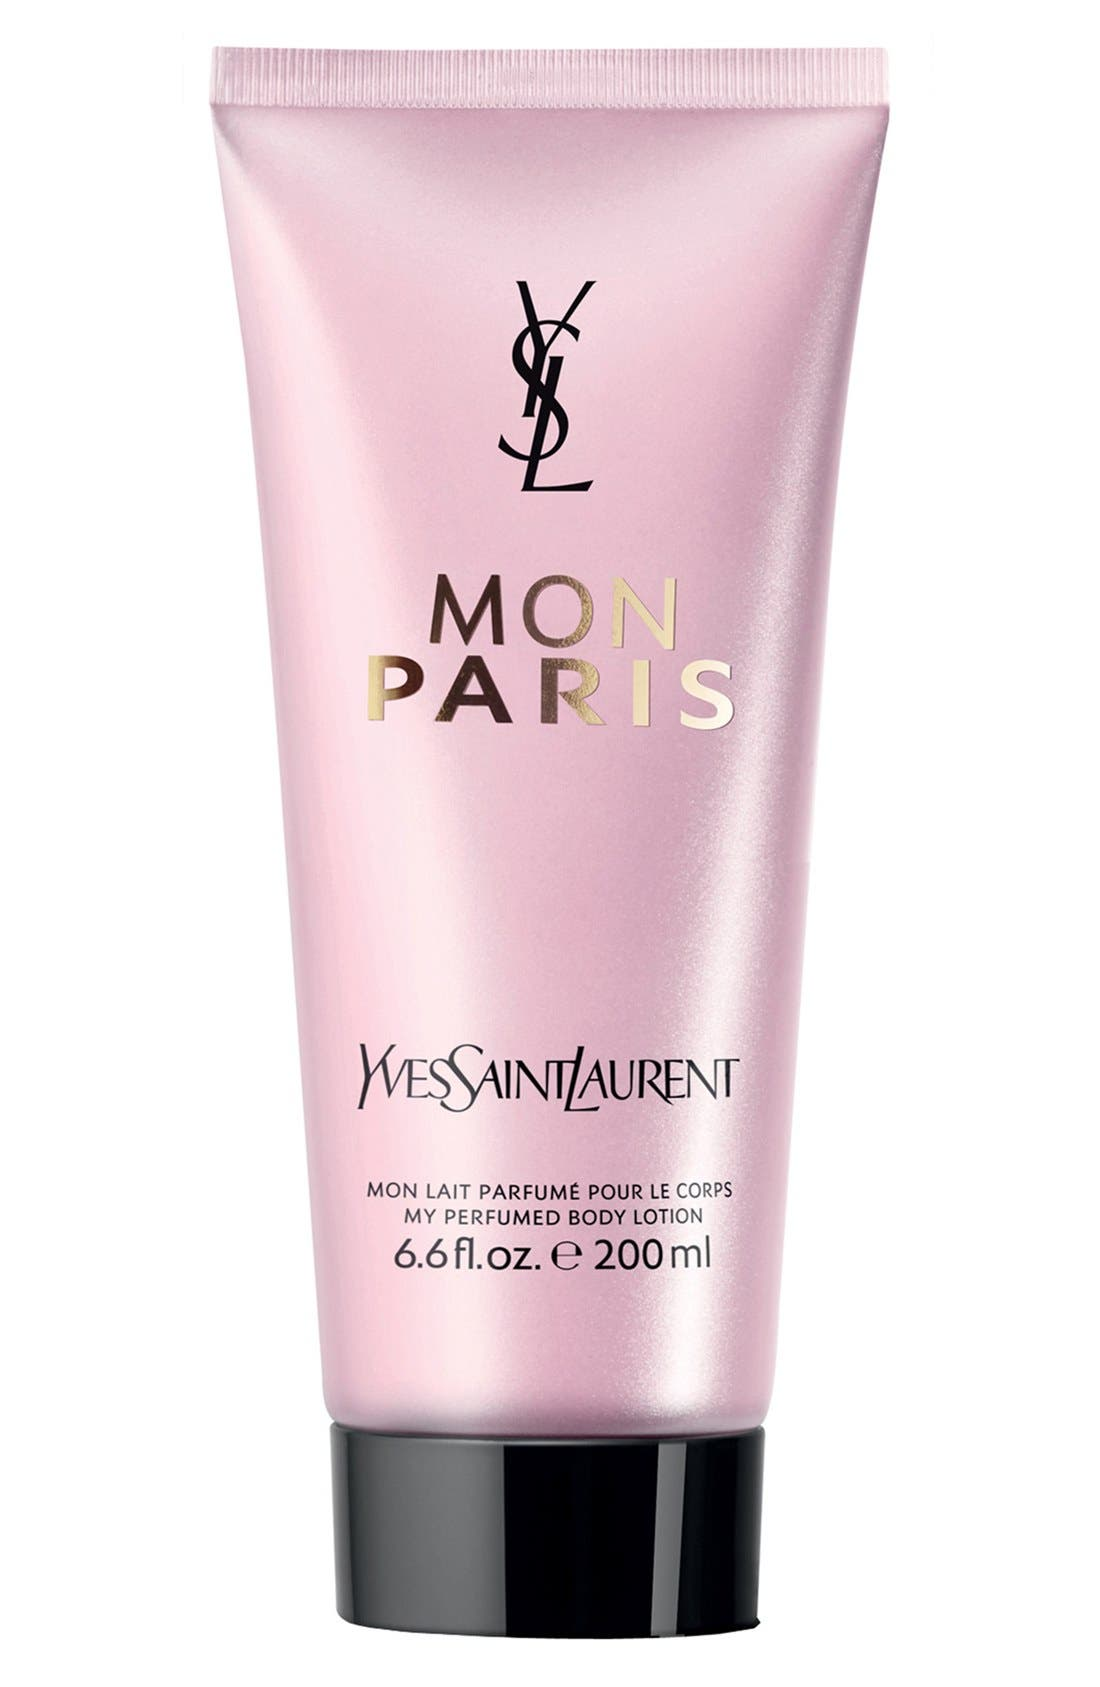 Yves Saint Laurent 'Mon Paris' Perfumed Body Lotion